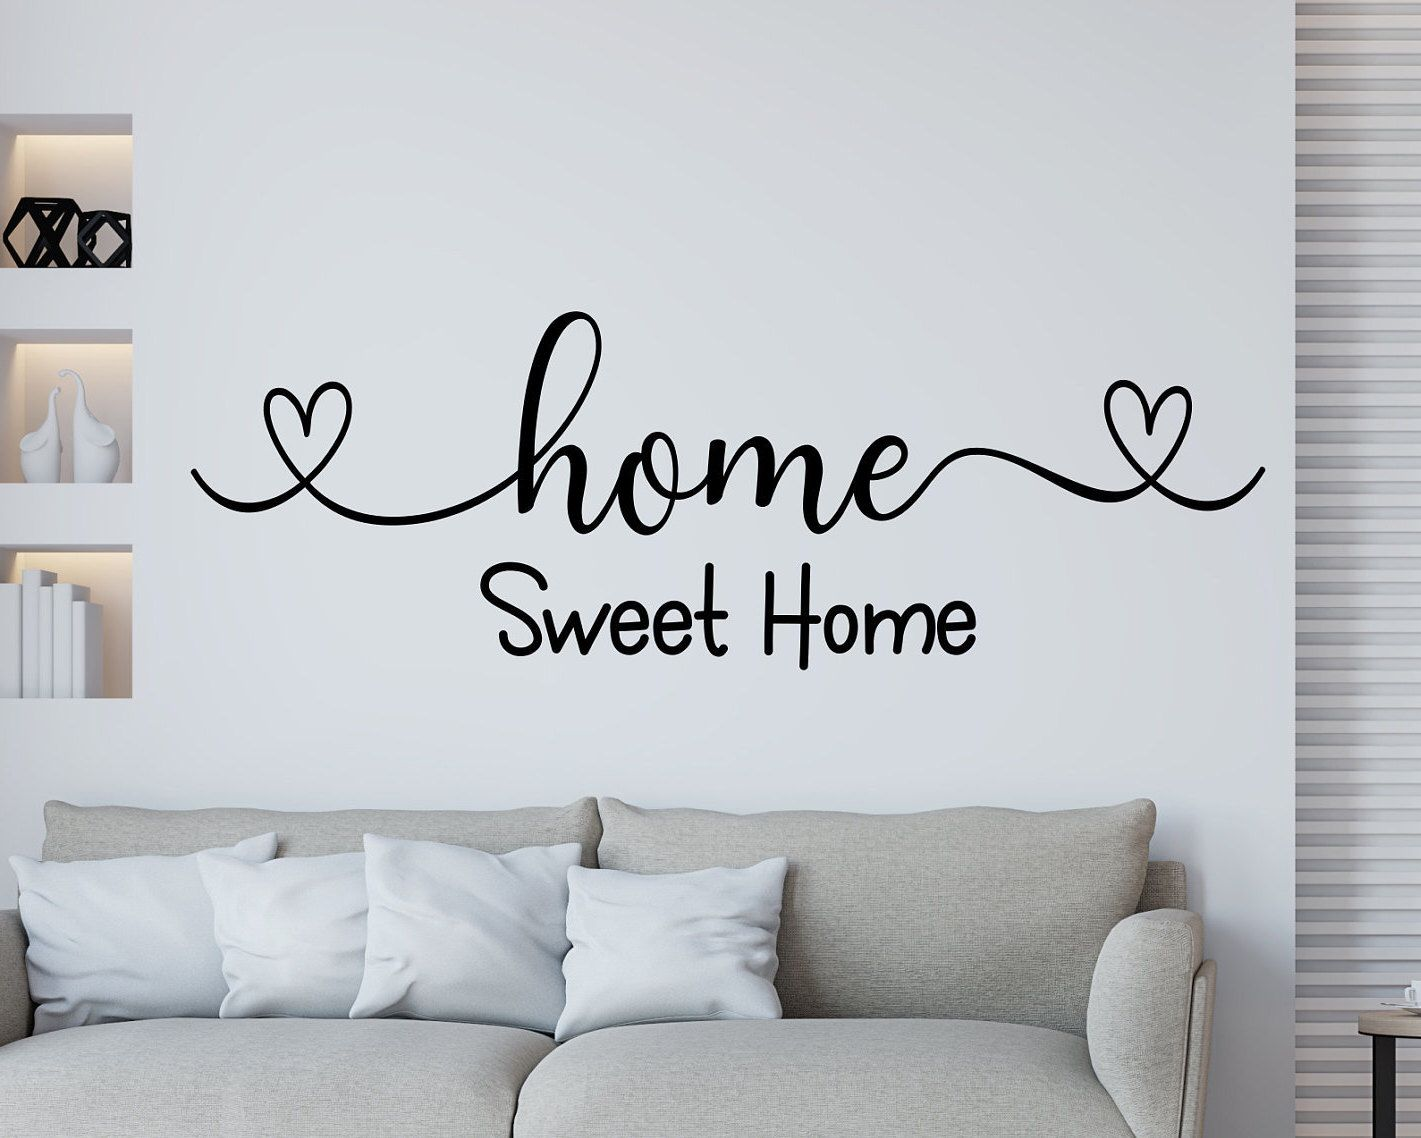 Home Sweet Home Wall Decal Family Wall Decal Home Sweet Home Etsy Family Wall Decals Large Wall Decor Family Wall